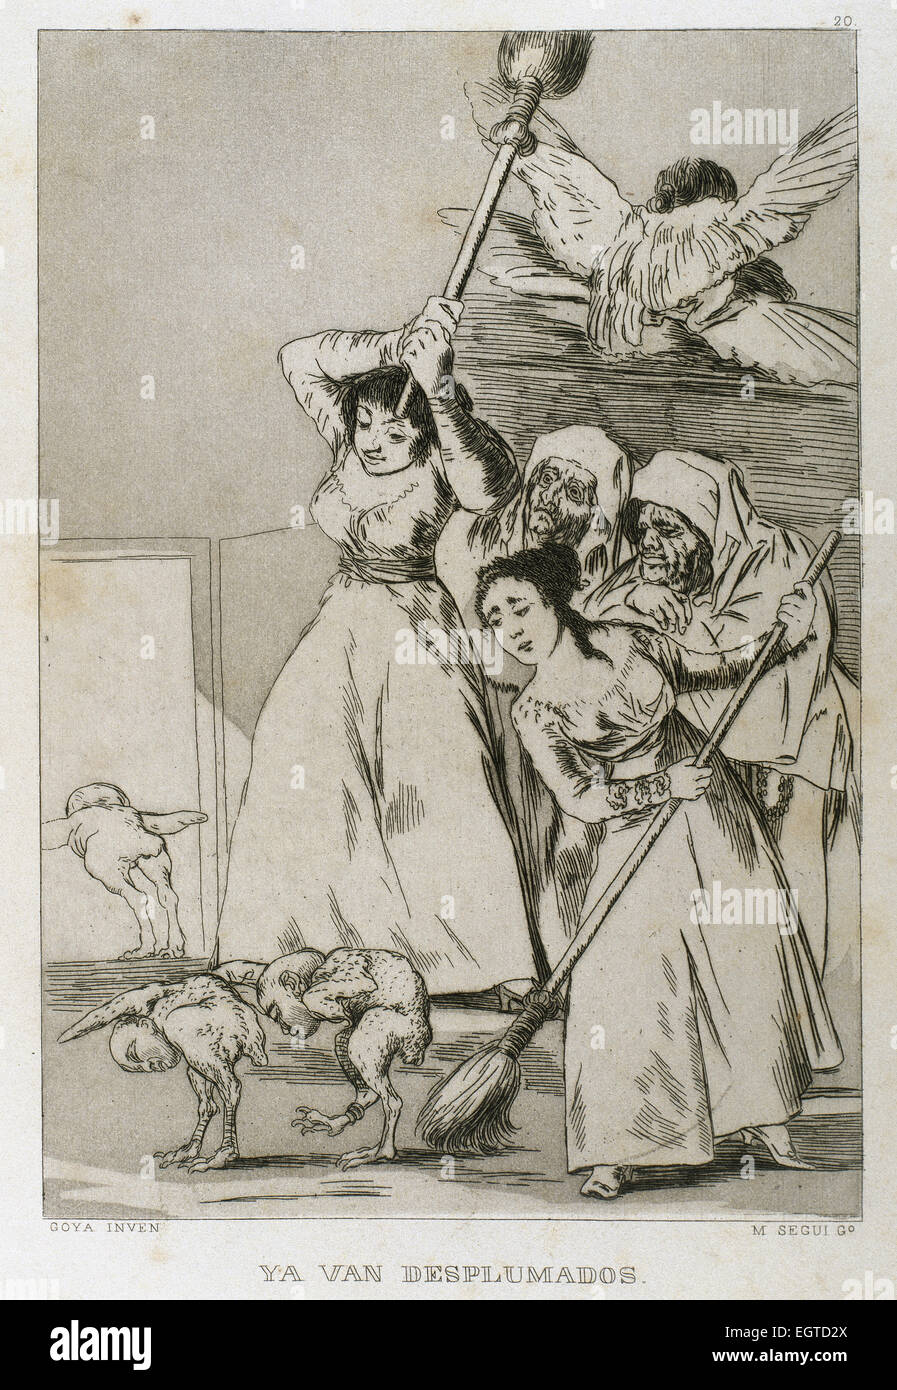 Francisco Goya (1746-1828). Caprices. Plaque 20. There they go plucked. Prado Museum. Madrid. - Stock Image